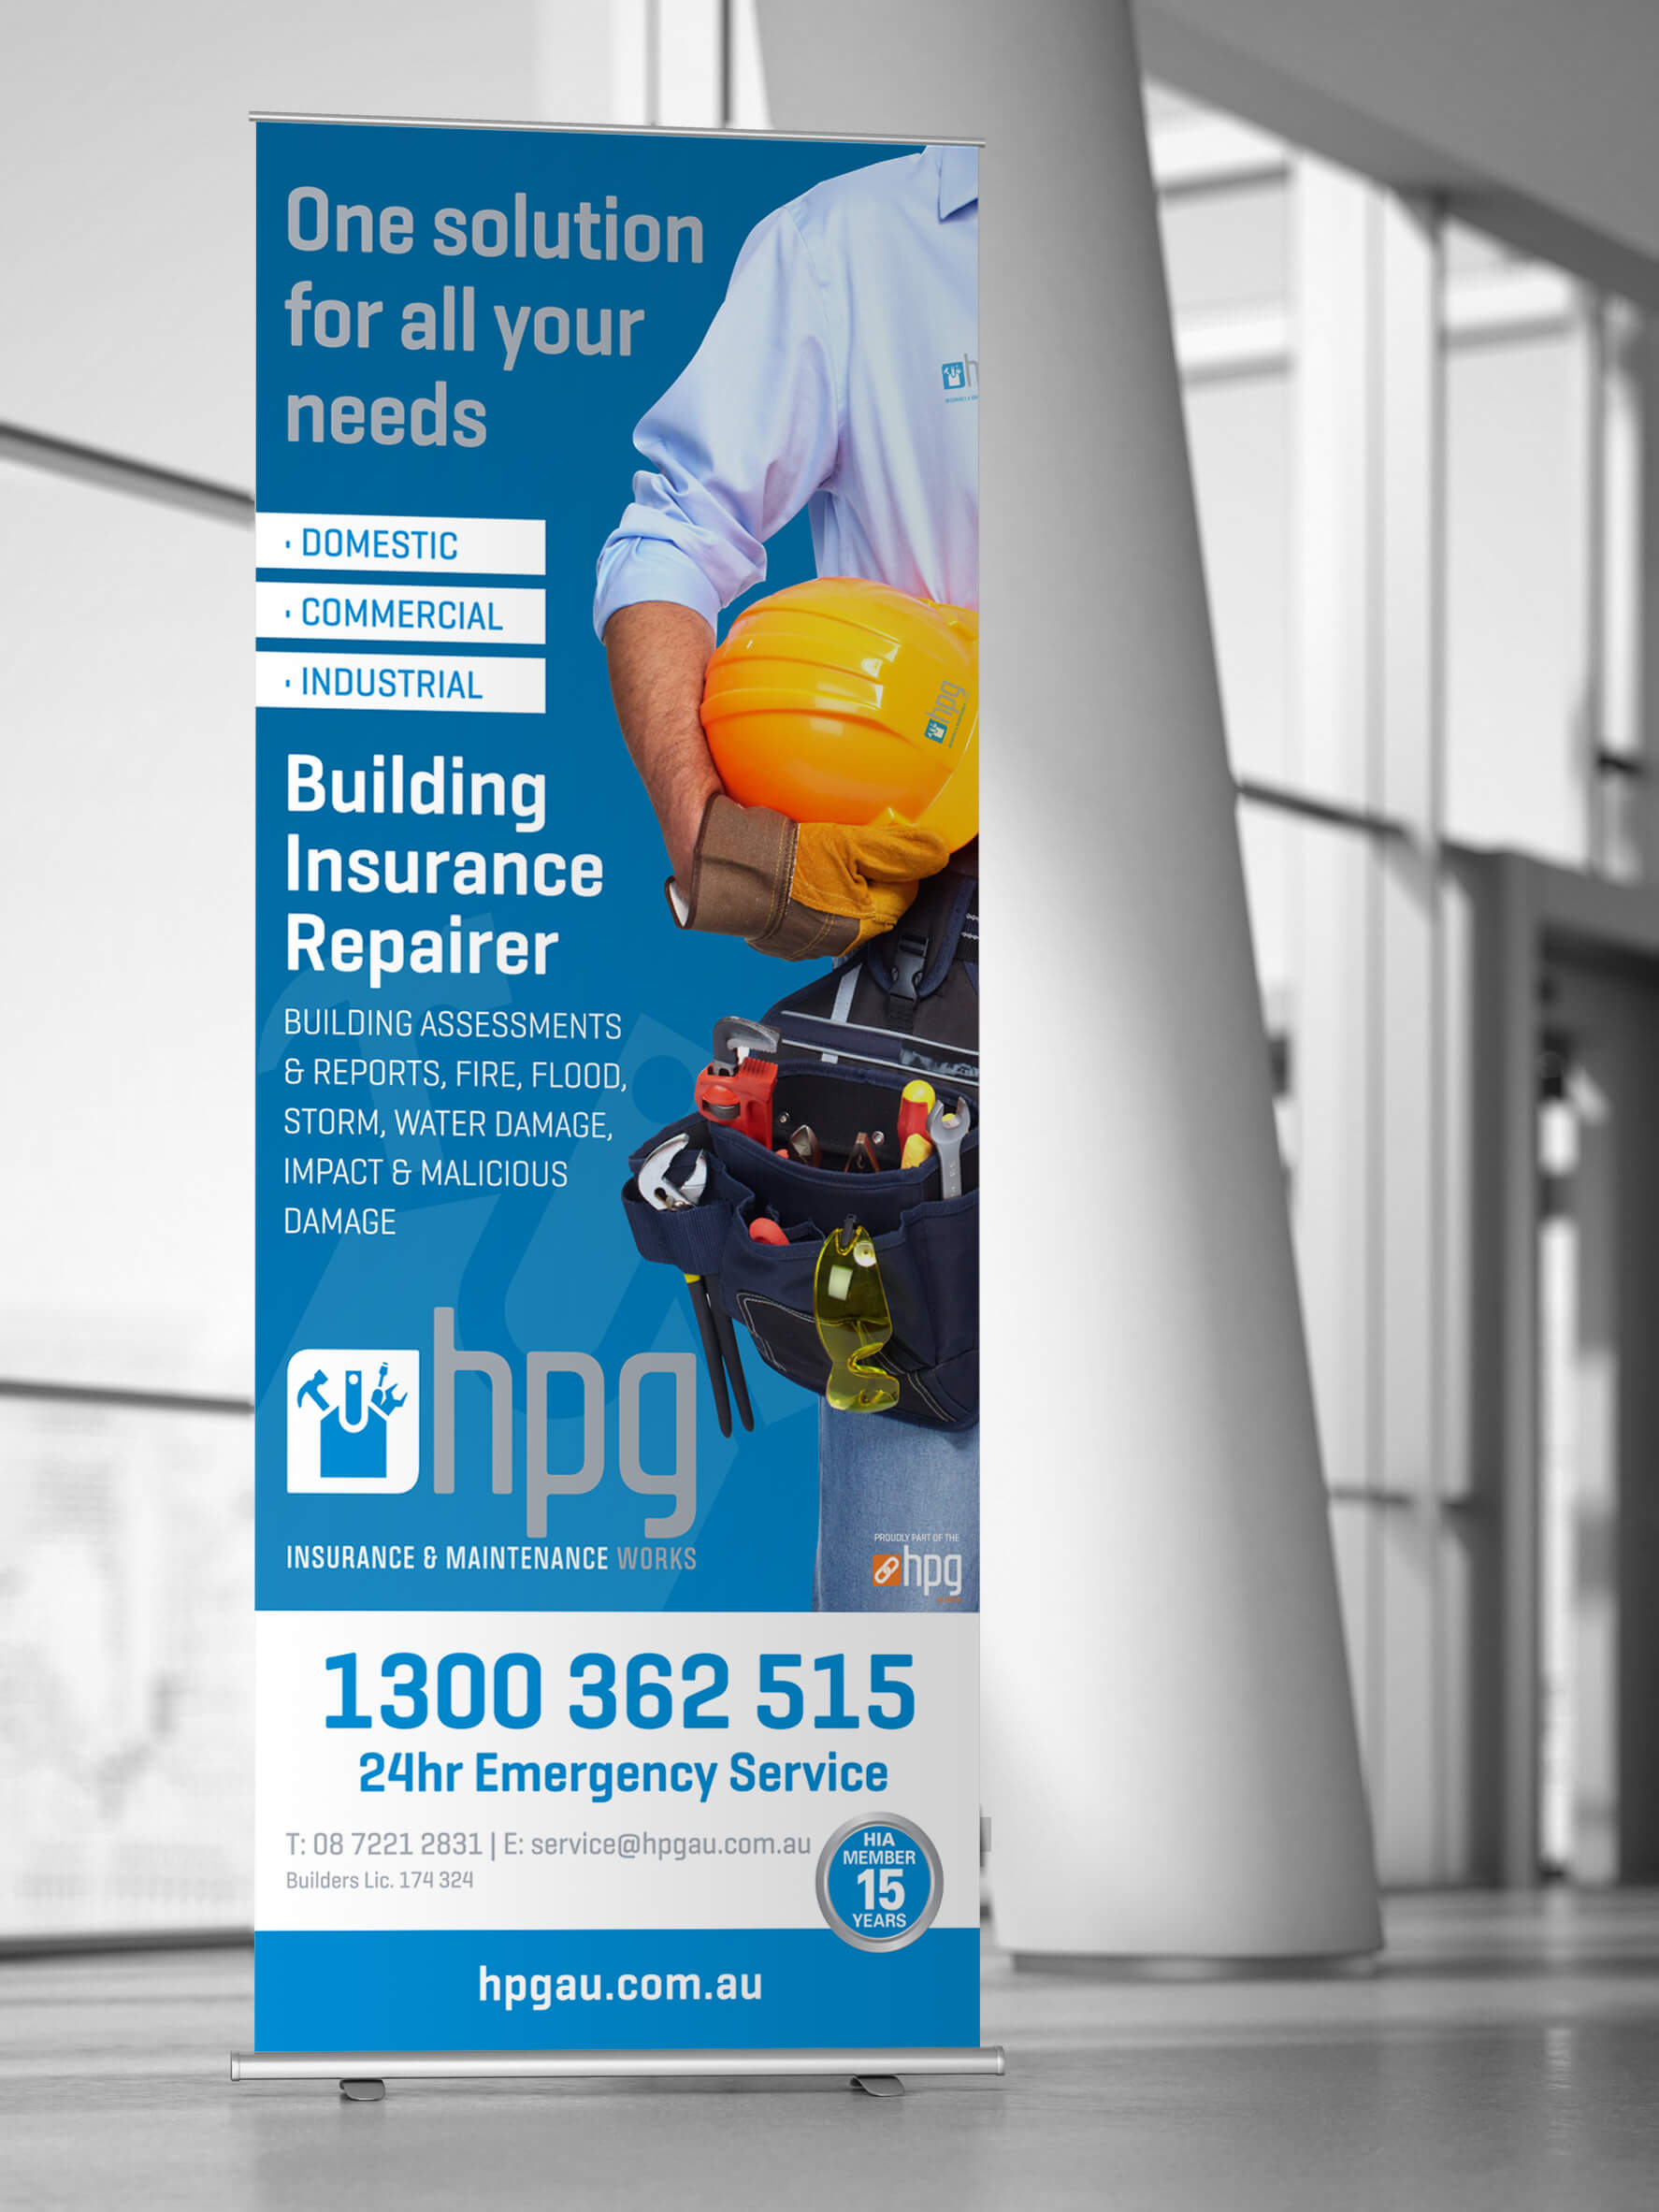 Icon Graphic Design Adelaide - business card design page image of HPG Insurance & Maintenance Works pull-up display.